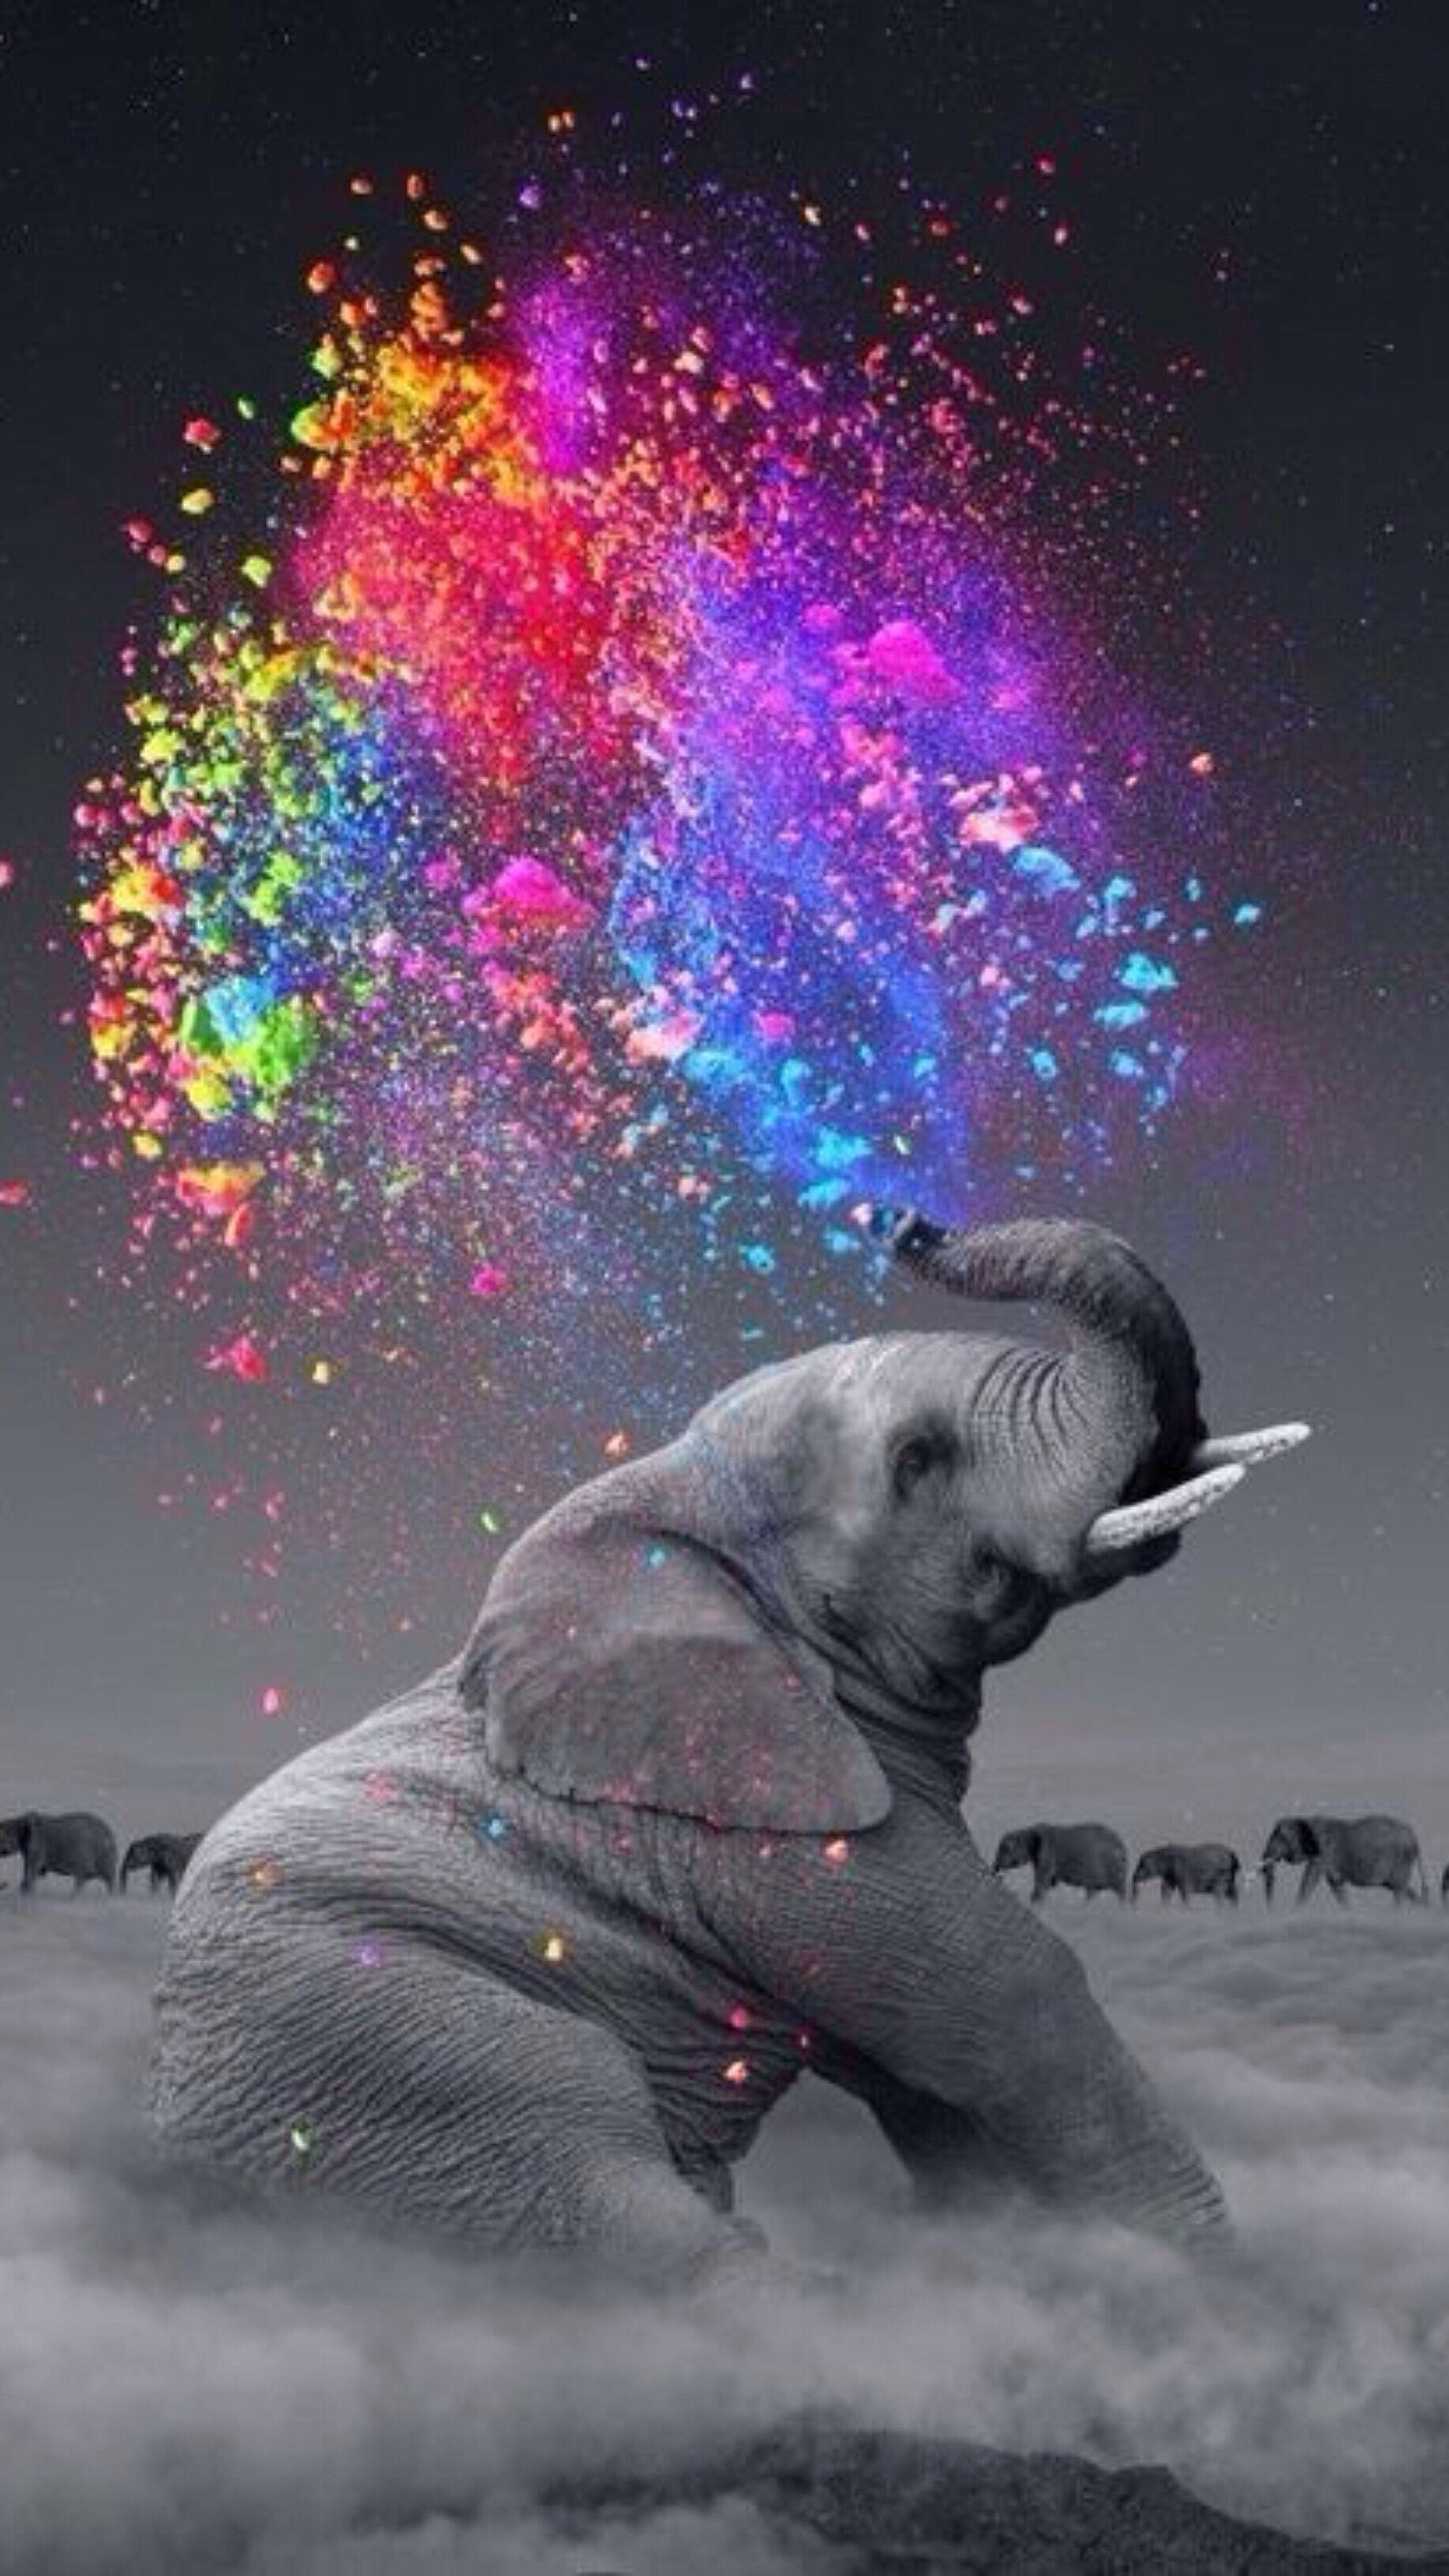 Pin By Michele On 9 16 Phone Elephant Art Elephant Pictures Elephant Photography